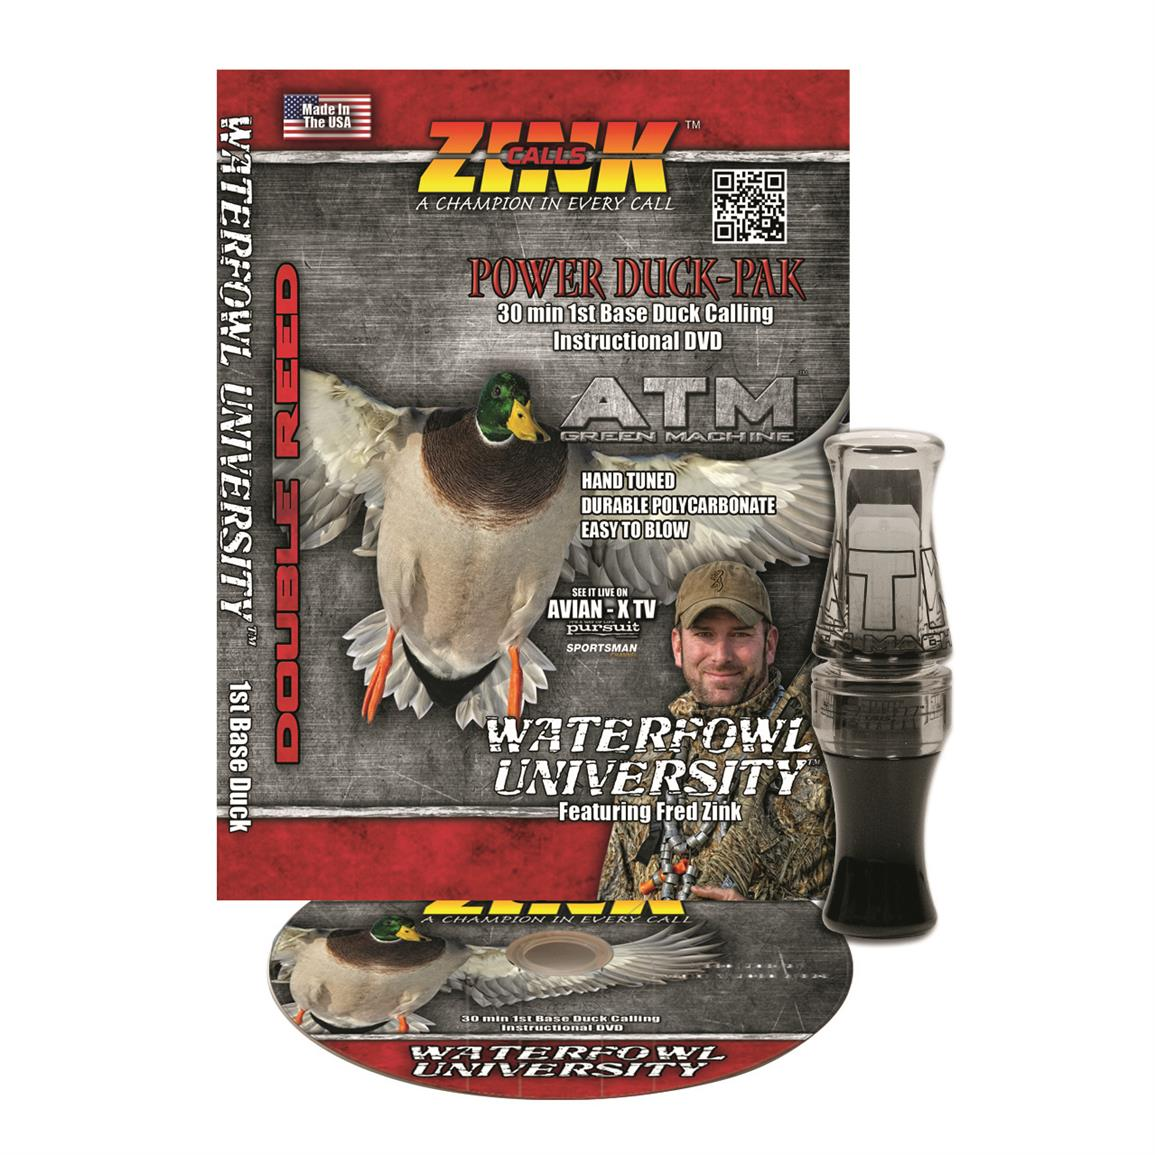 Zink ATM Green Machine Double Reed Polycarbonate Duck Call and Instructional DVD